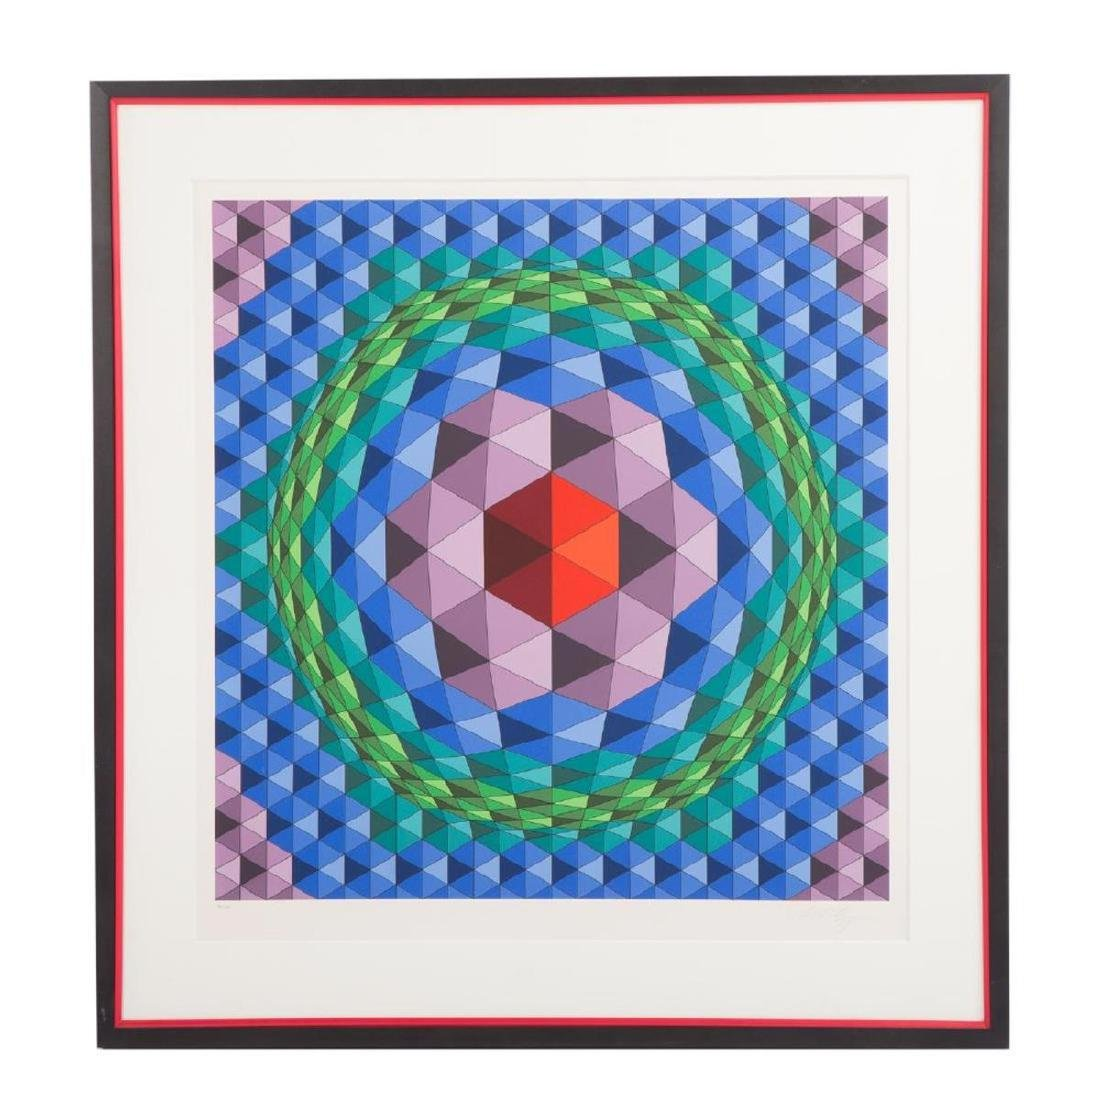 Victor Vasarely - Untitled Op-Art Composition